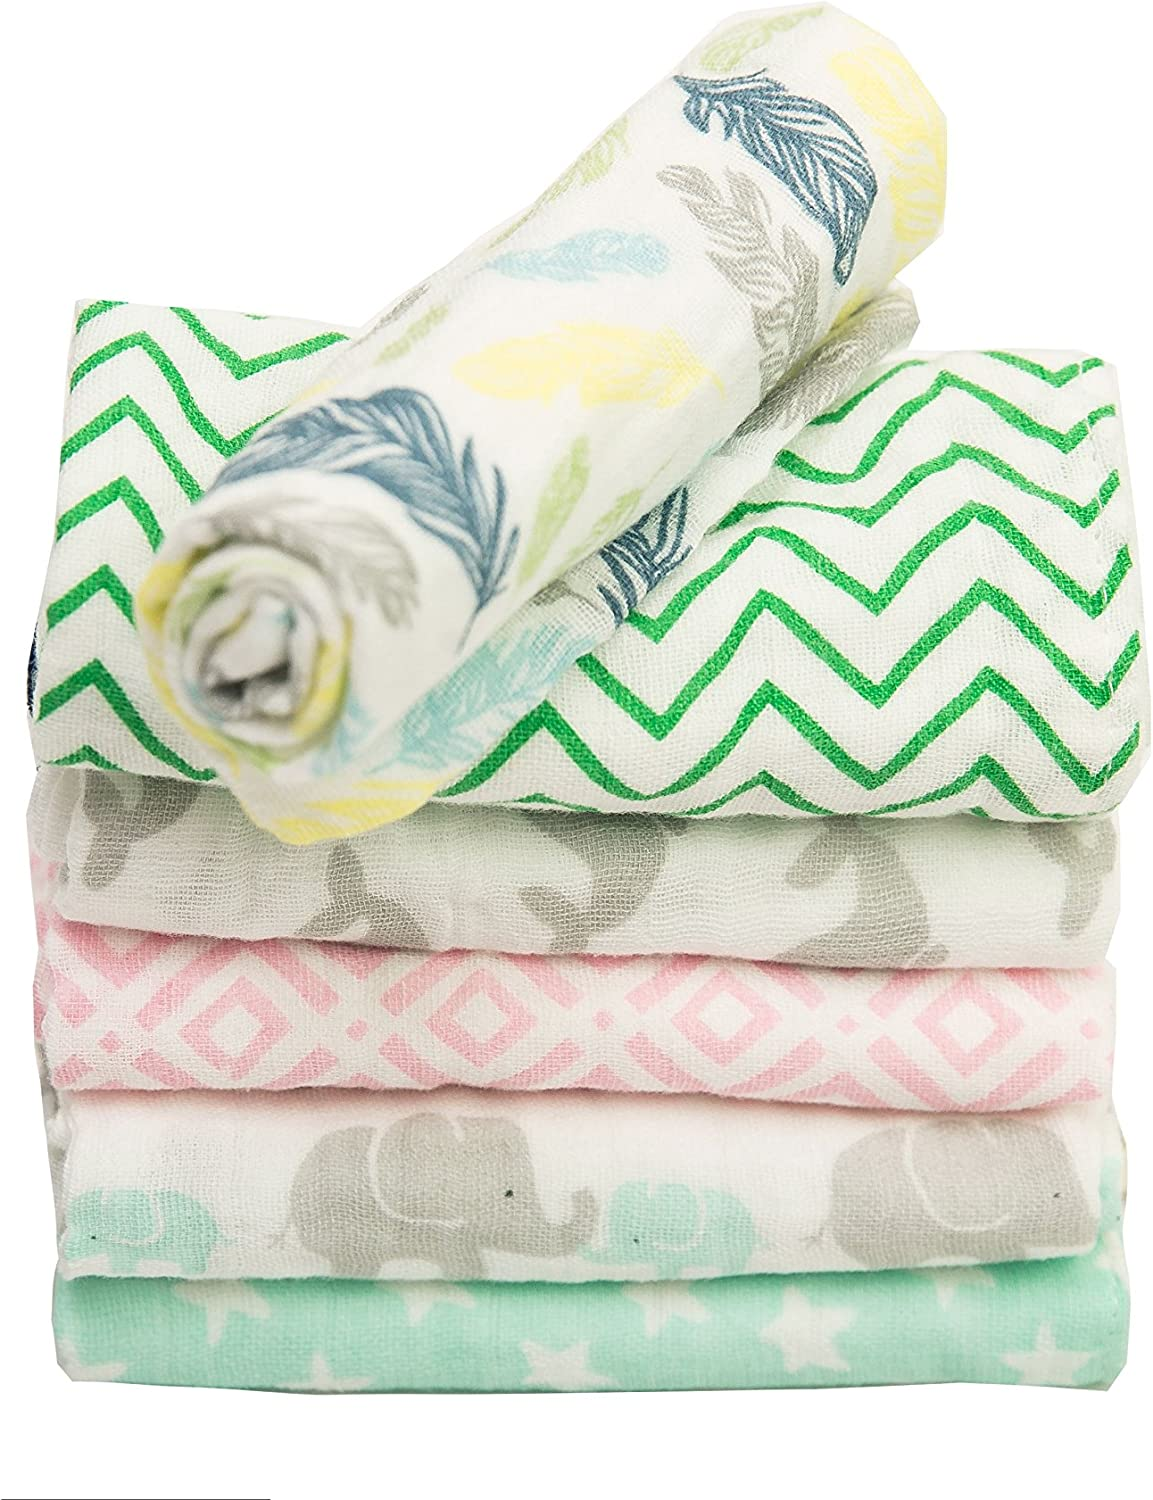 with Hook 6-pack BWinka Unique Design encrypt 100/% muslin Soft Newborn Baby Face Towel and Muslin Washcloth for Sensitive Skin 12x12 reusable wipes Best for Shower Gift